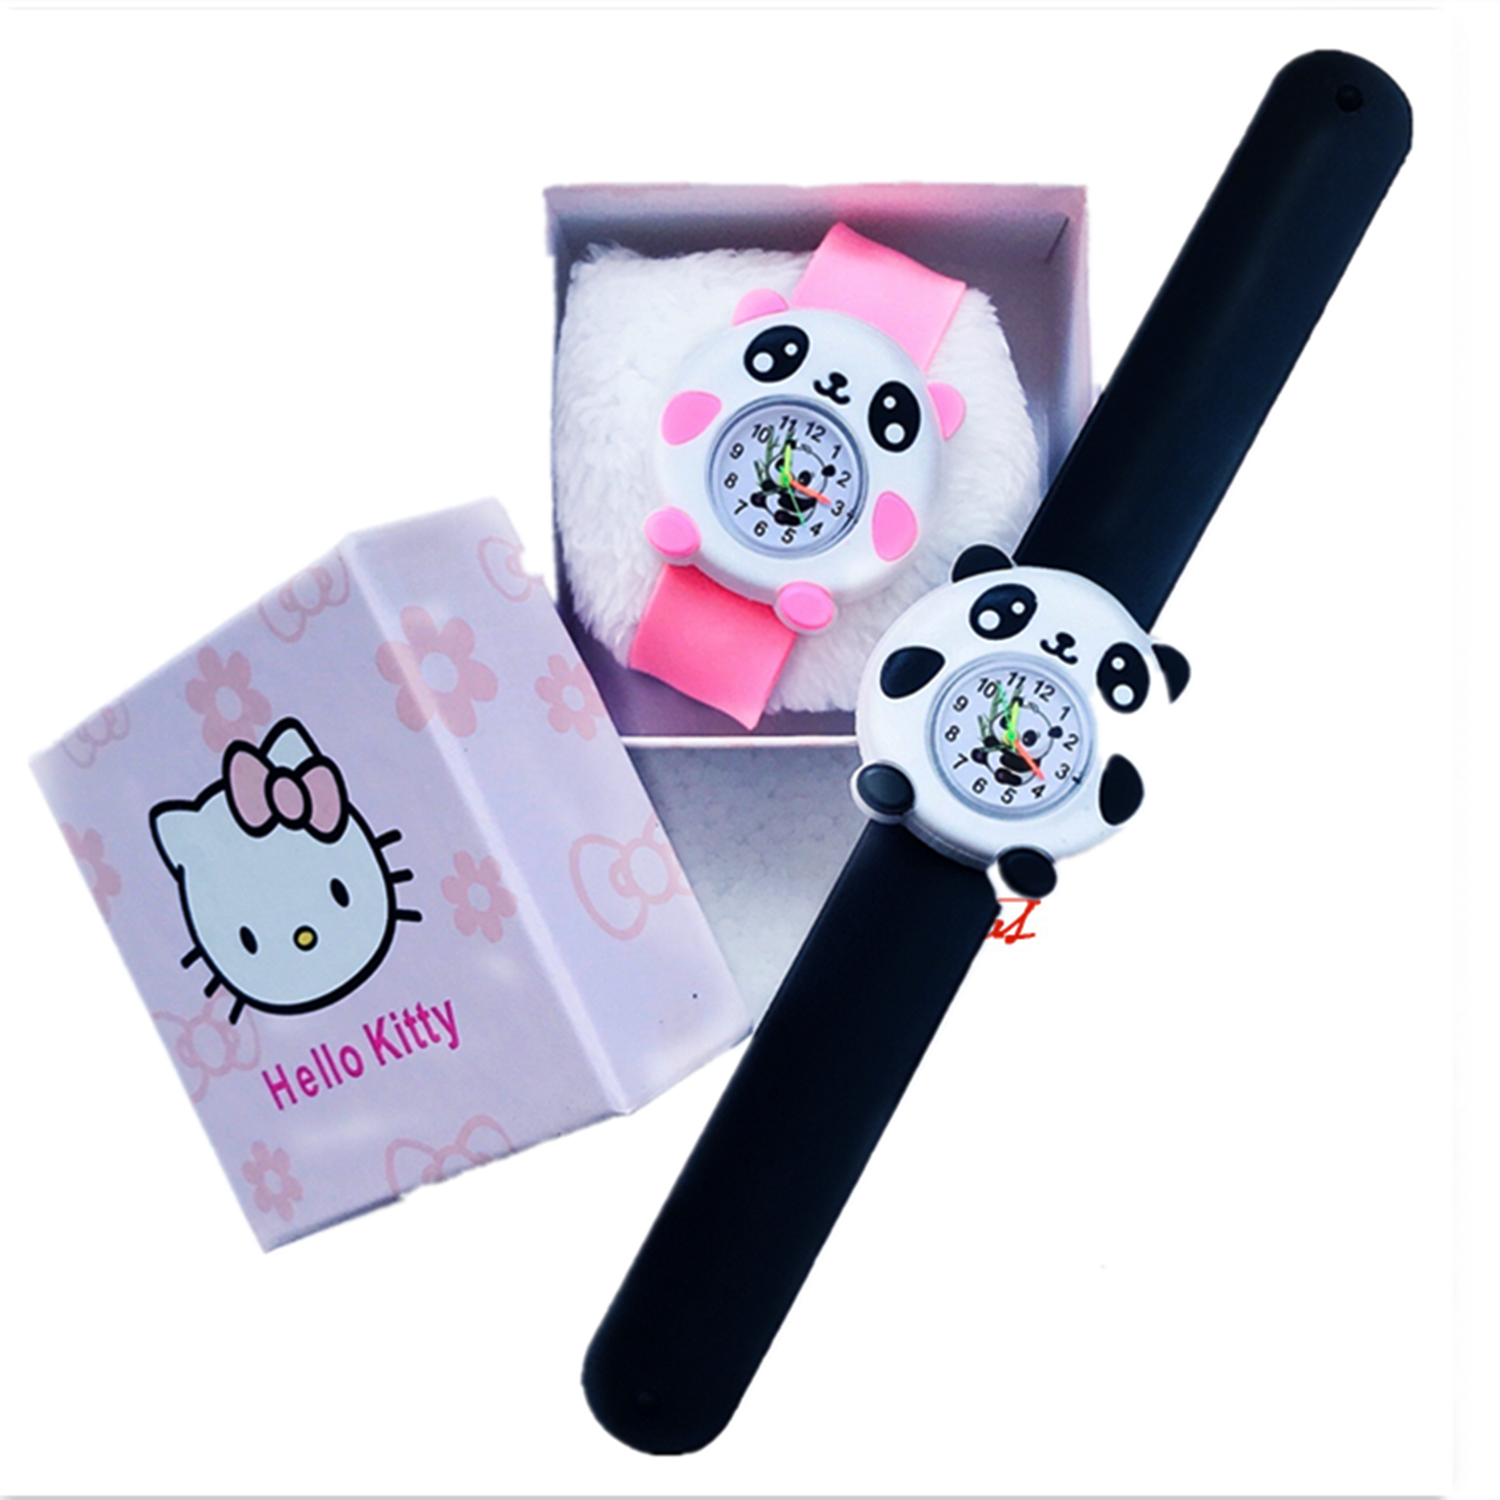 2020 new childrens electronic cute cartoon watch animal page panda real watch for boys and girls